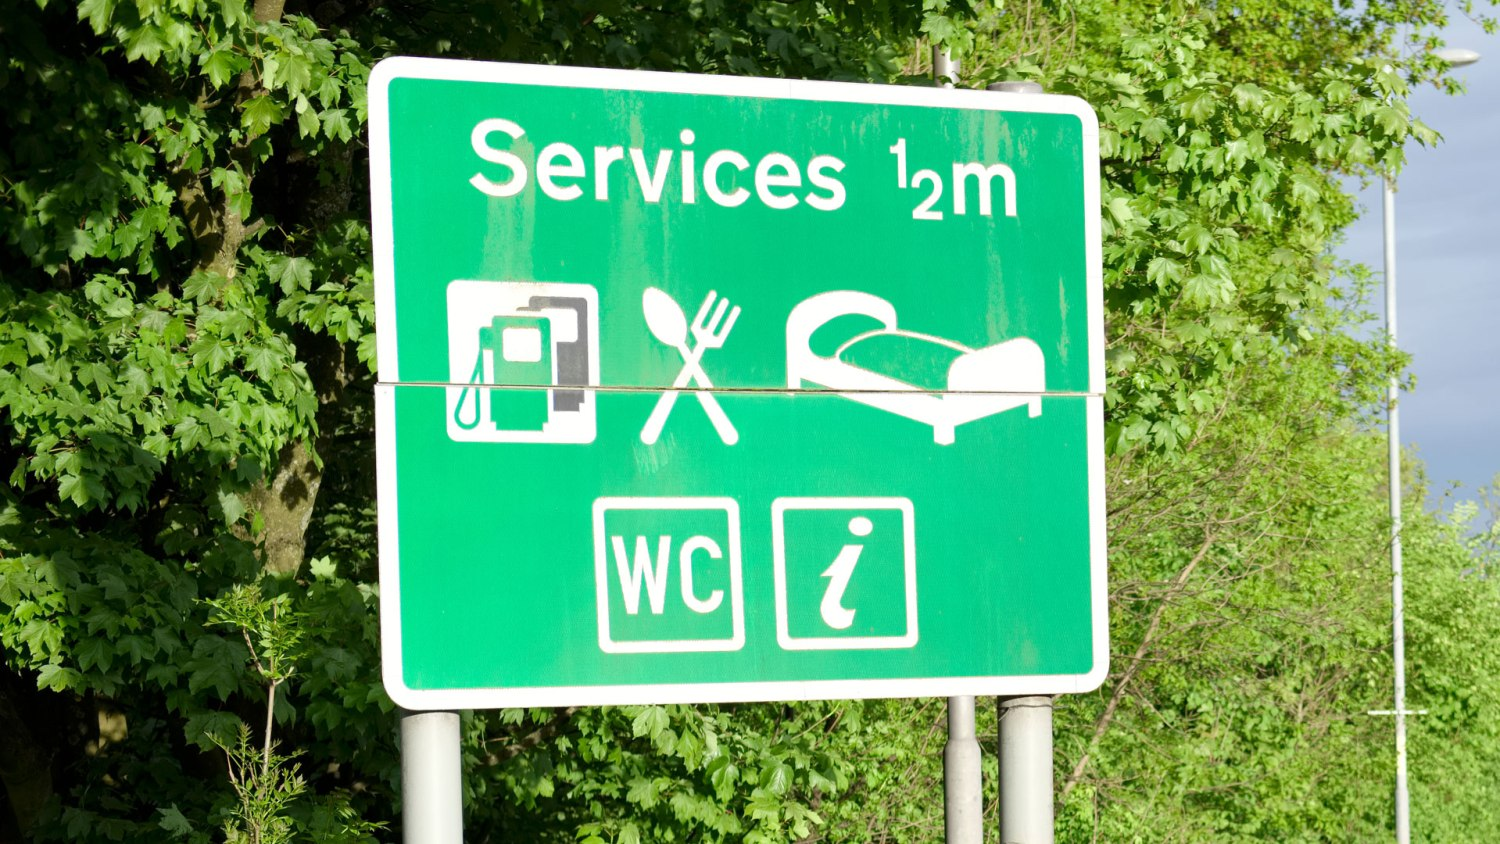 fully accessible toilets planned